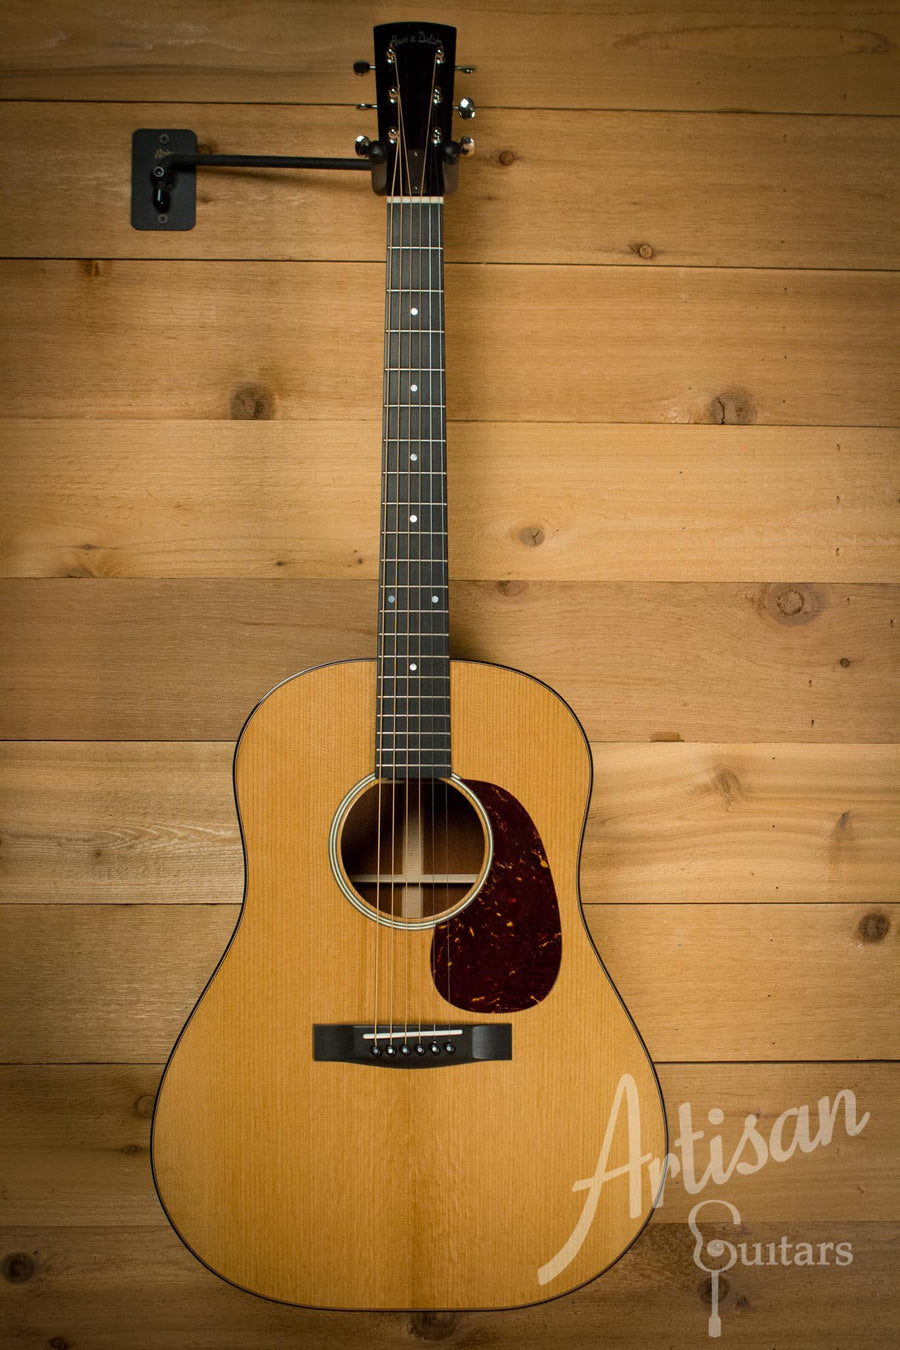 Huss and Dalton DS Slope Dreadnought Guitar Thermo-Cured Red Spruce and Caracolillo Sinker Mahogany Pre-Owned 2015 ID-9197 - Artisan Guitars